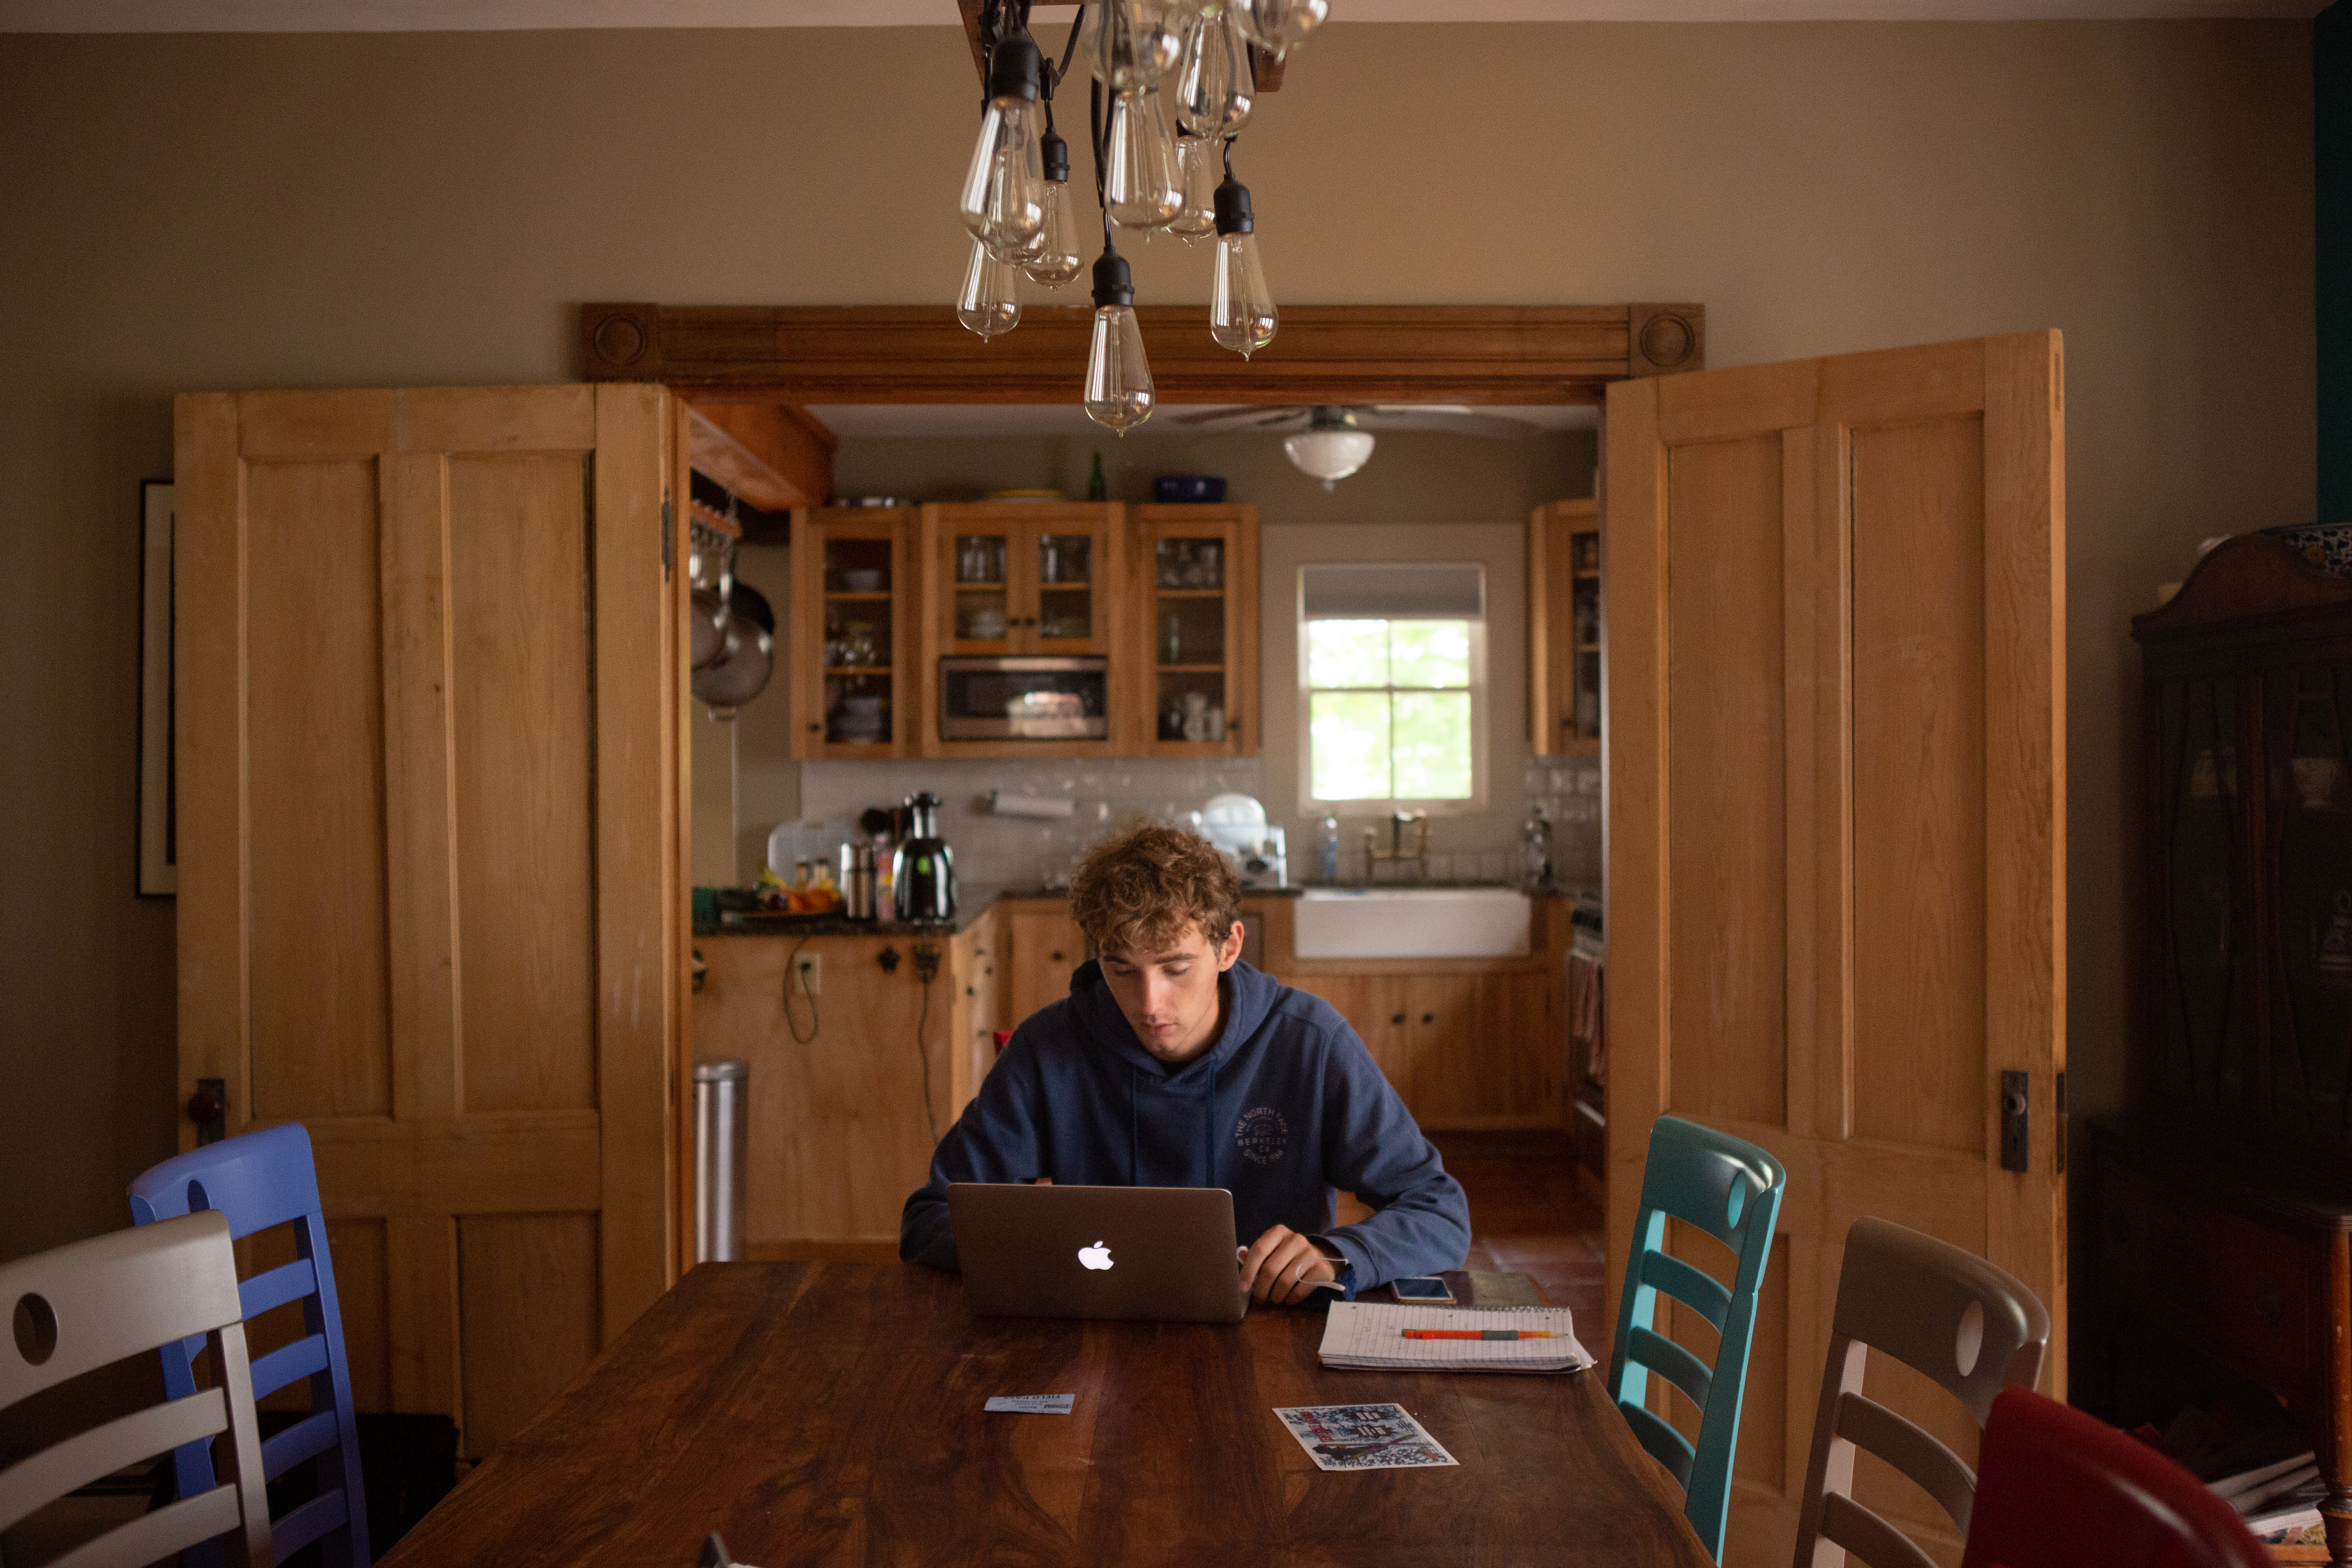 Twins and high school seniors Dermot and Aidan McMillan do classwork from their home.